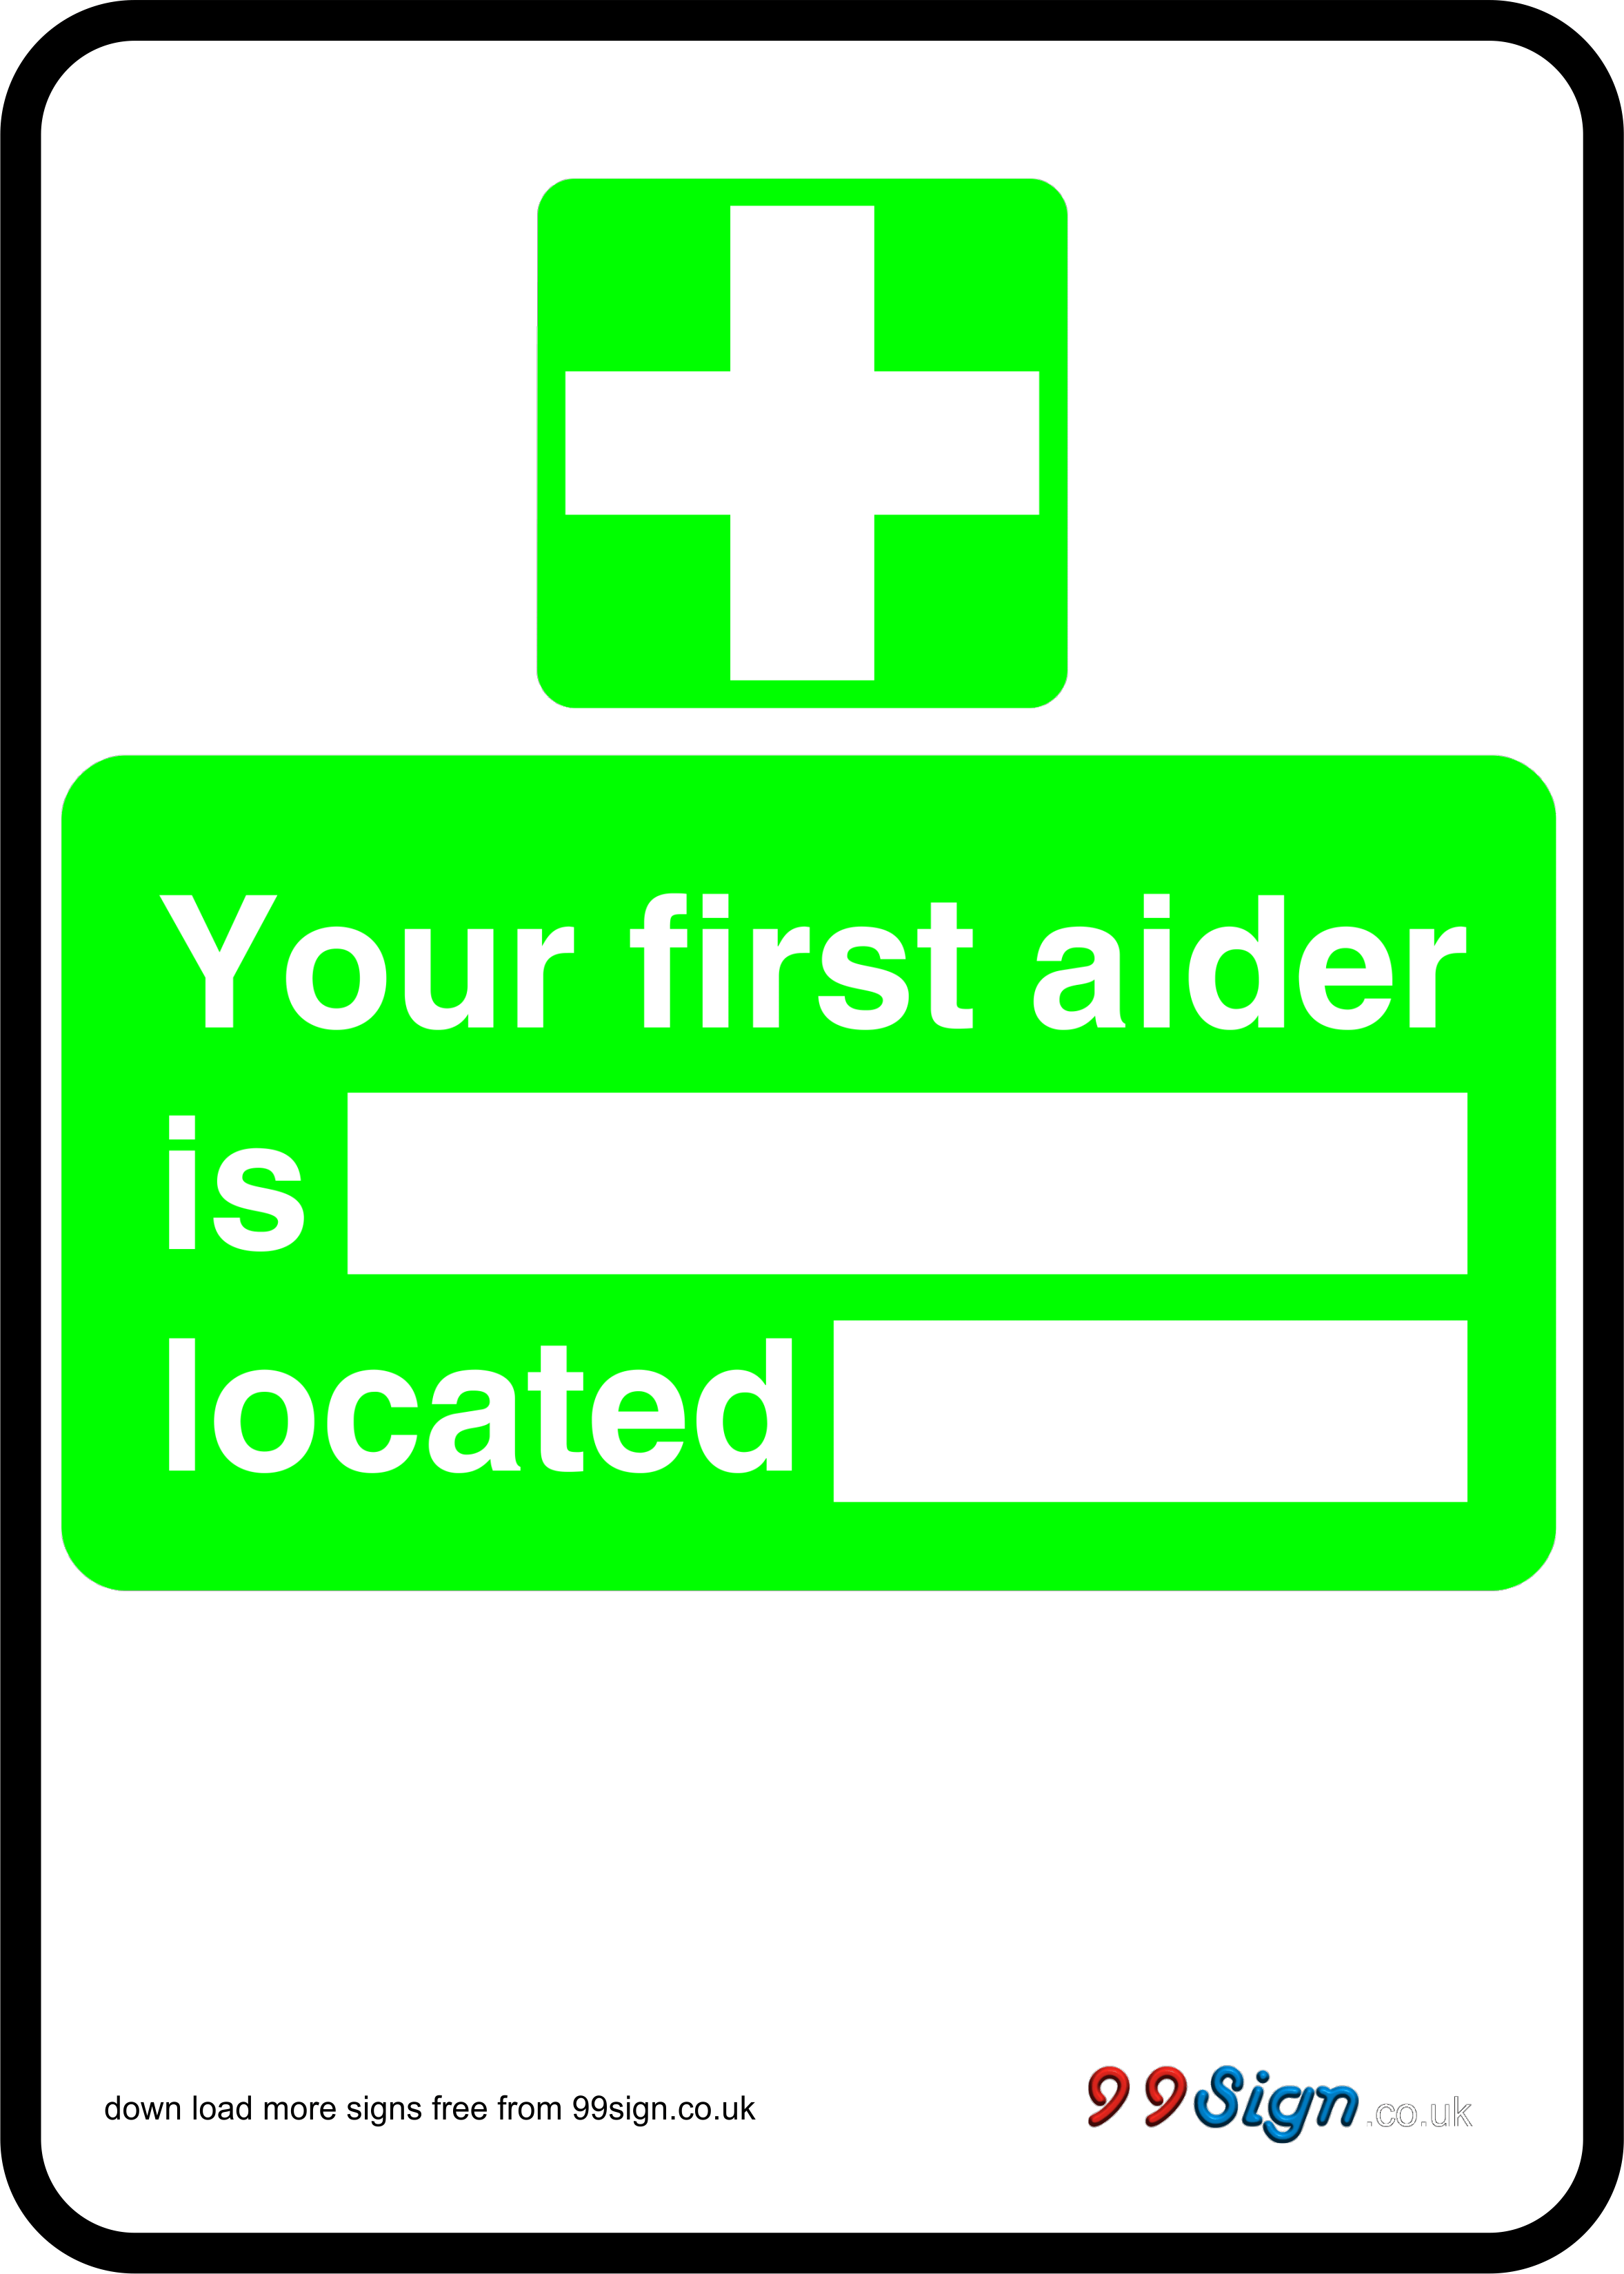 Free prinable first aid sign your first aider is located free free prinable first aid sign your first aider is located free template clipart printable signage or low cost metal faced sign yadclub Choice Image